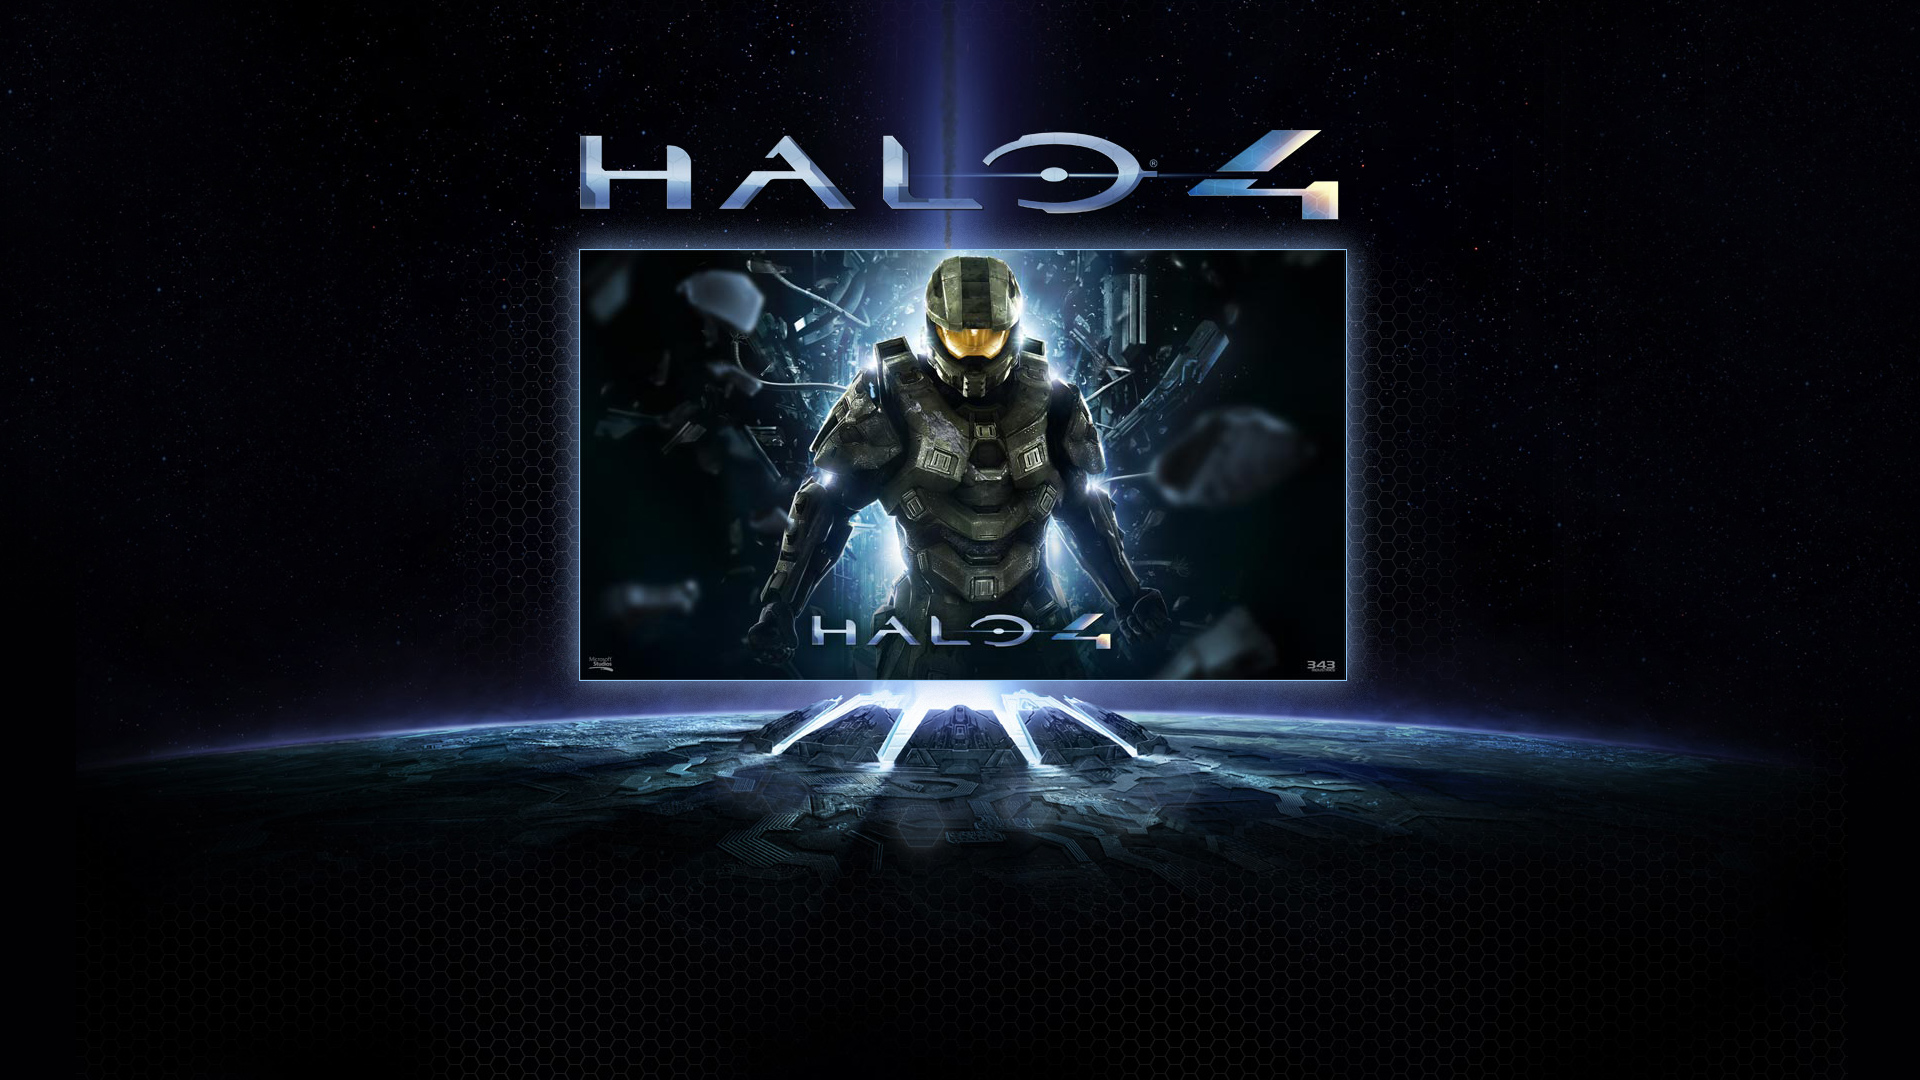 Halo 4 Game 805.74 Kb